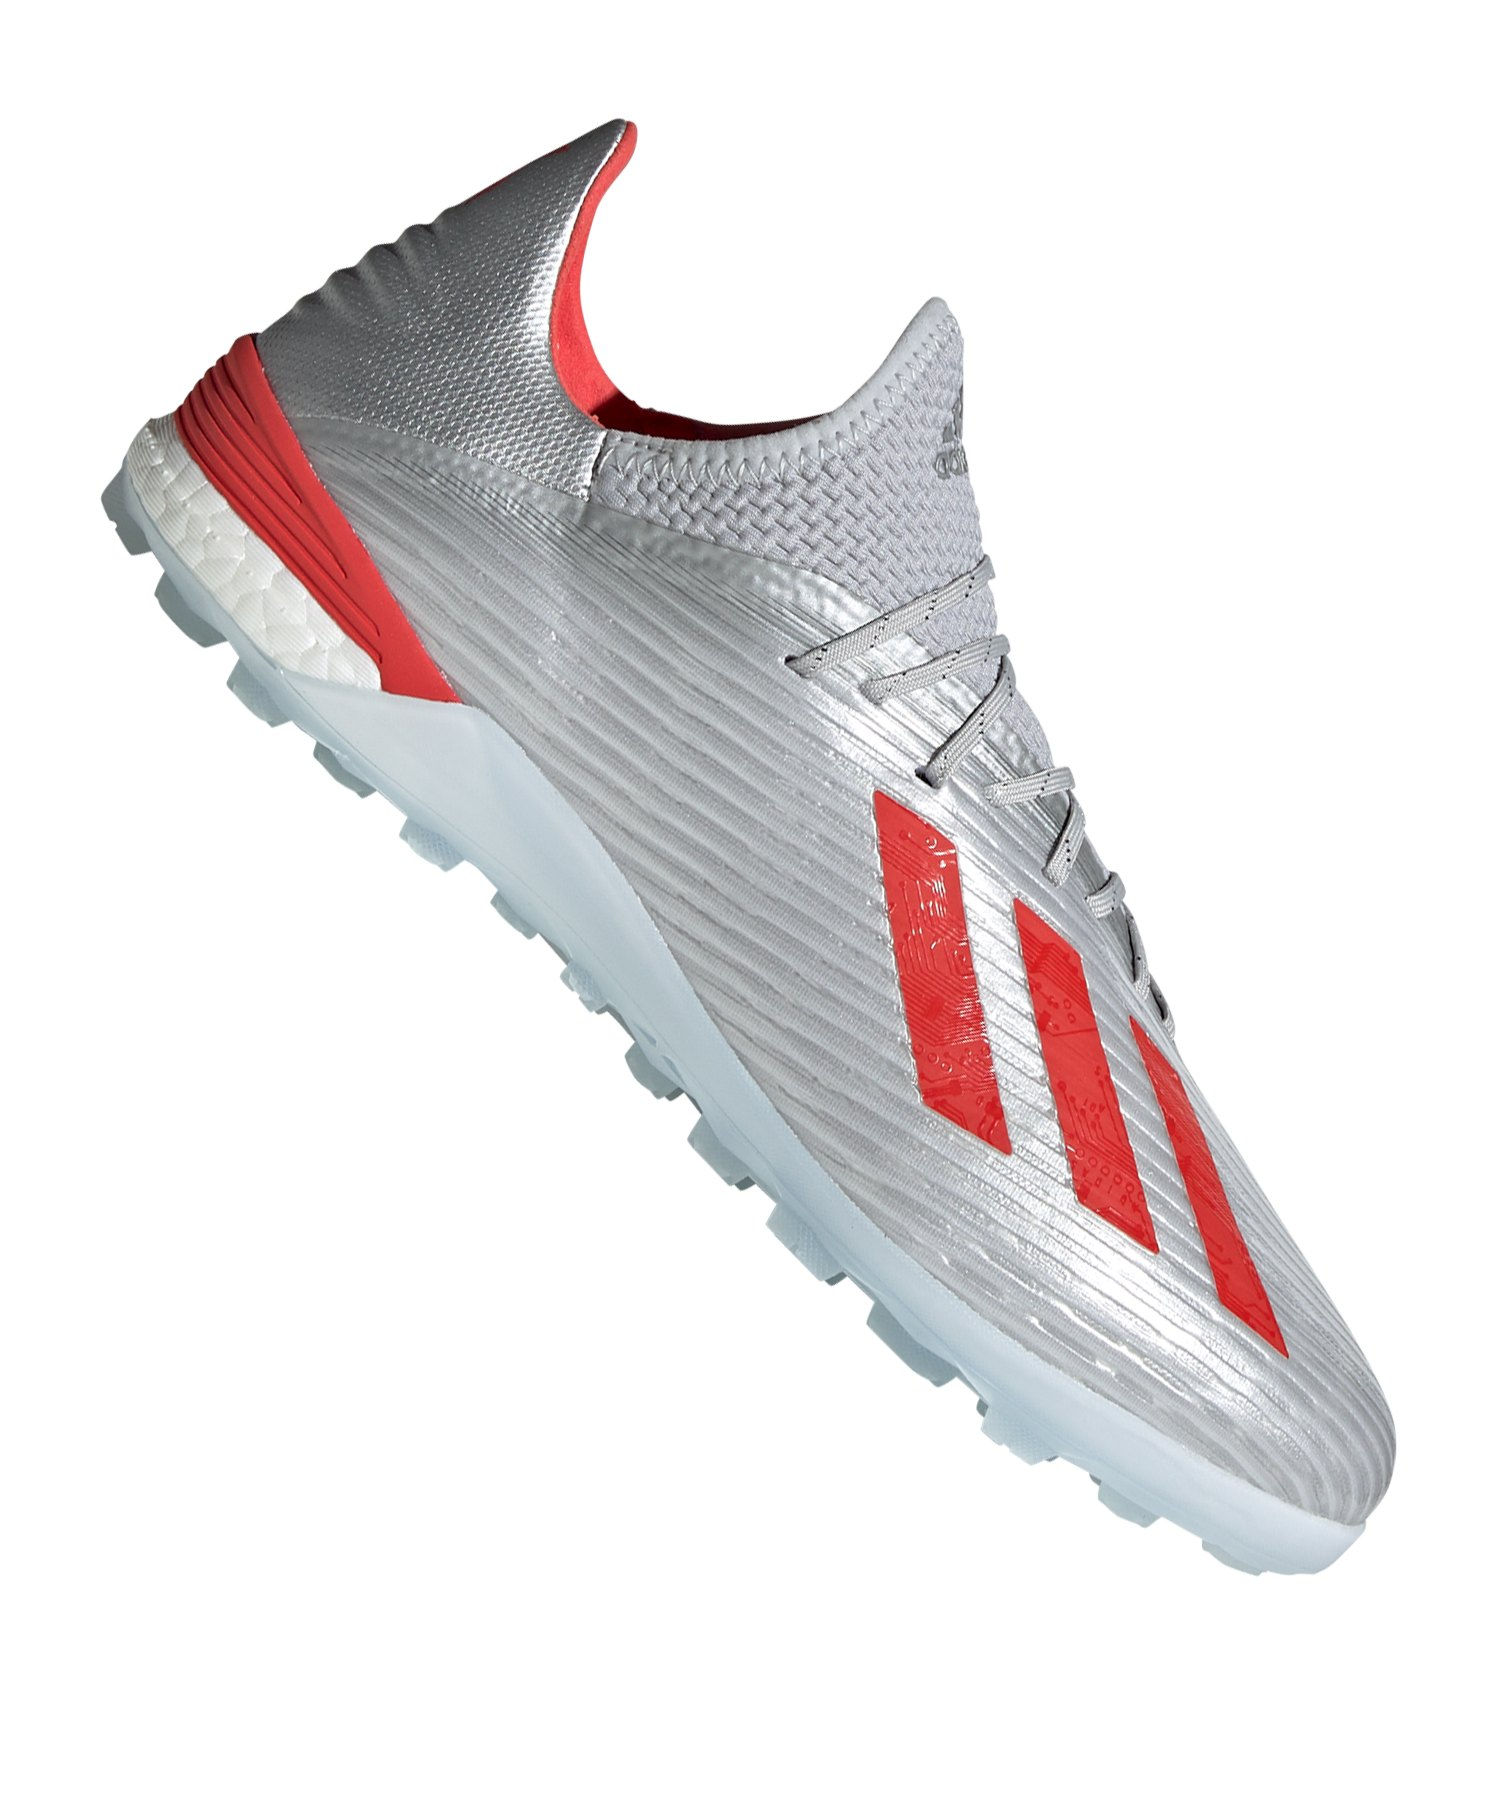 adidas X 19.1 TF Silber Rot - Silber